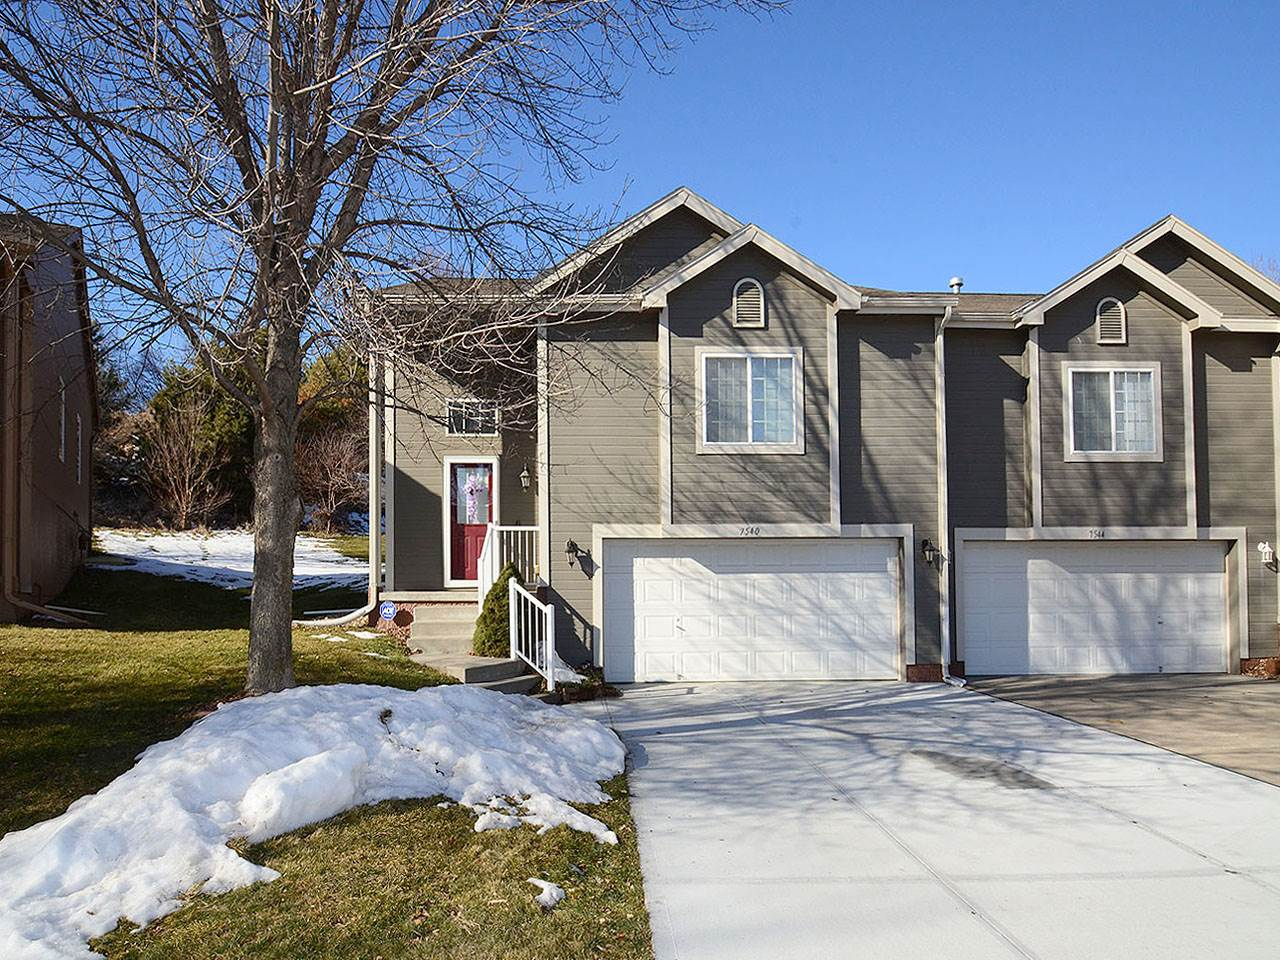 7540 North 77 Terrace, Omaha, NE 68122